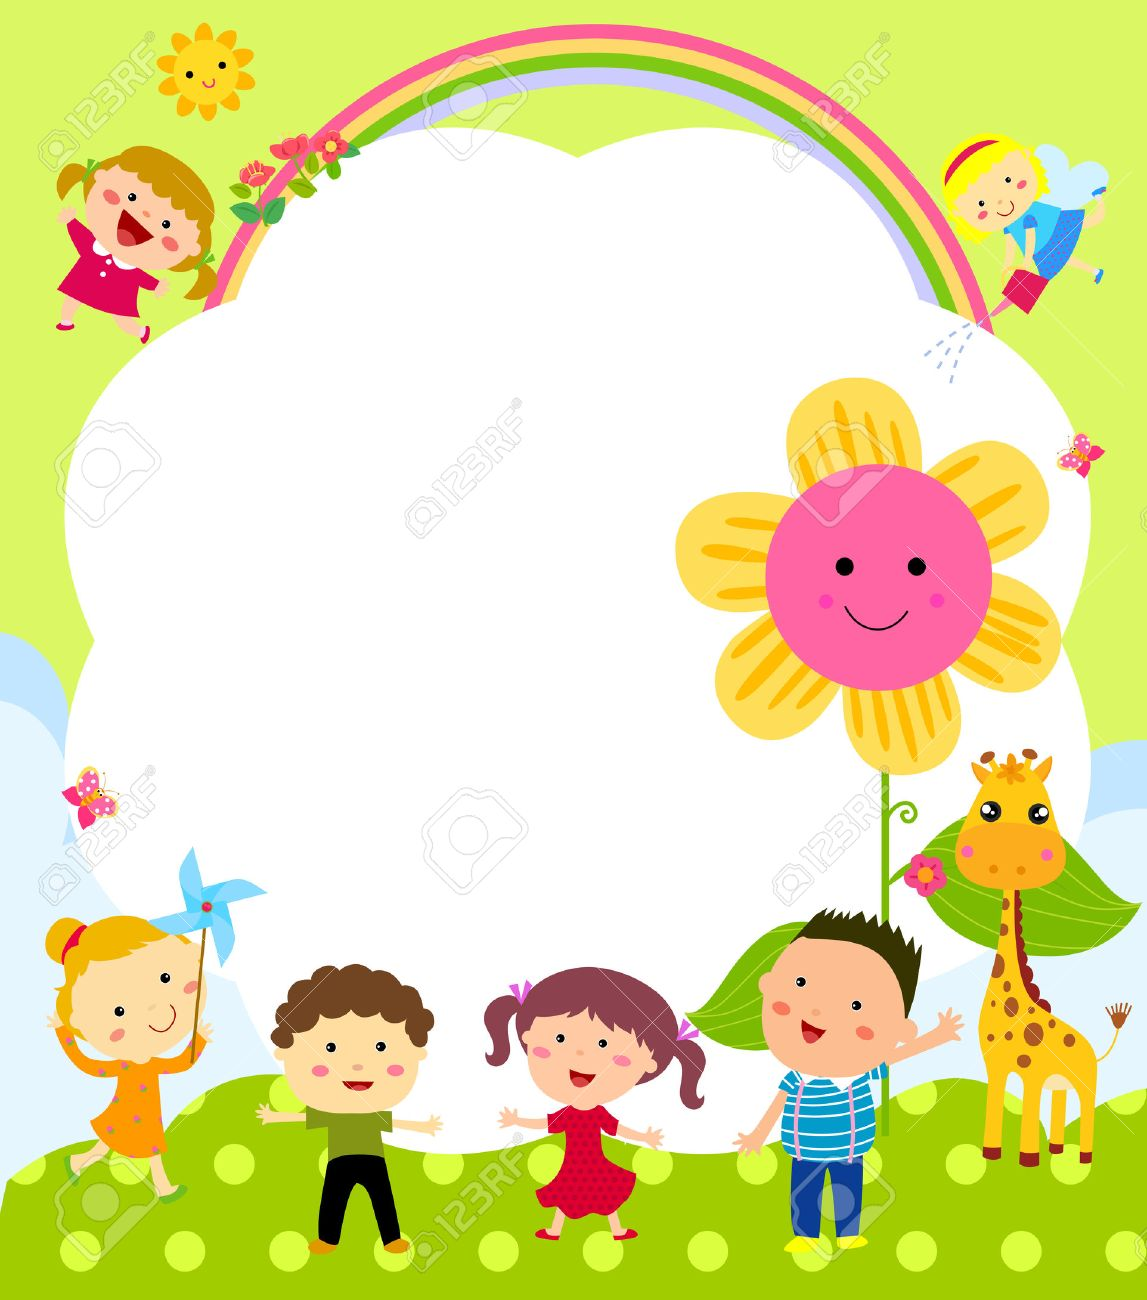 Cute Frame With Kids Royalty Free Cliparts, Vectors, And Stock ...